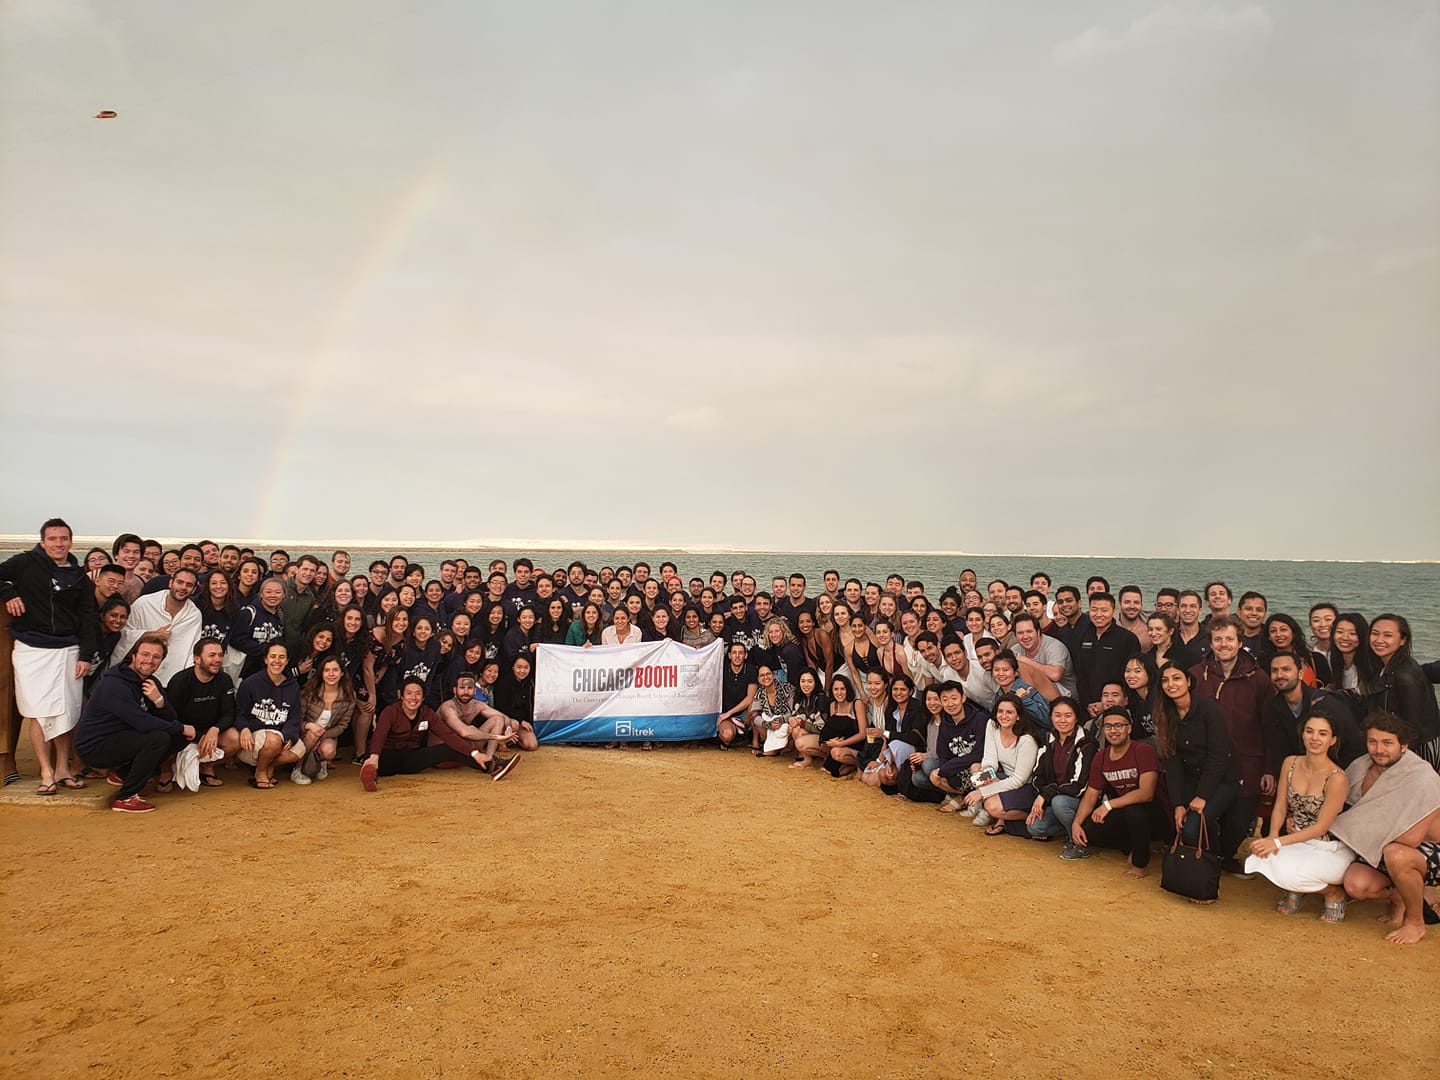 A rainbow completes the perfect Boothright photo in front of the Dead Sea